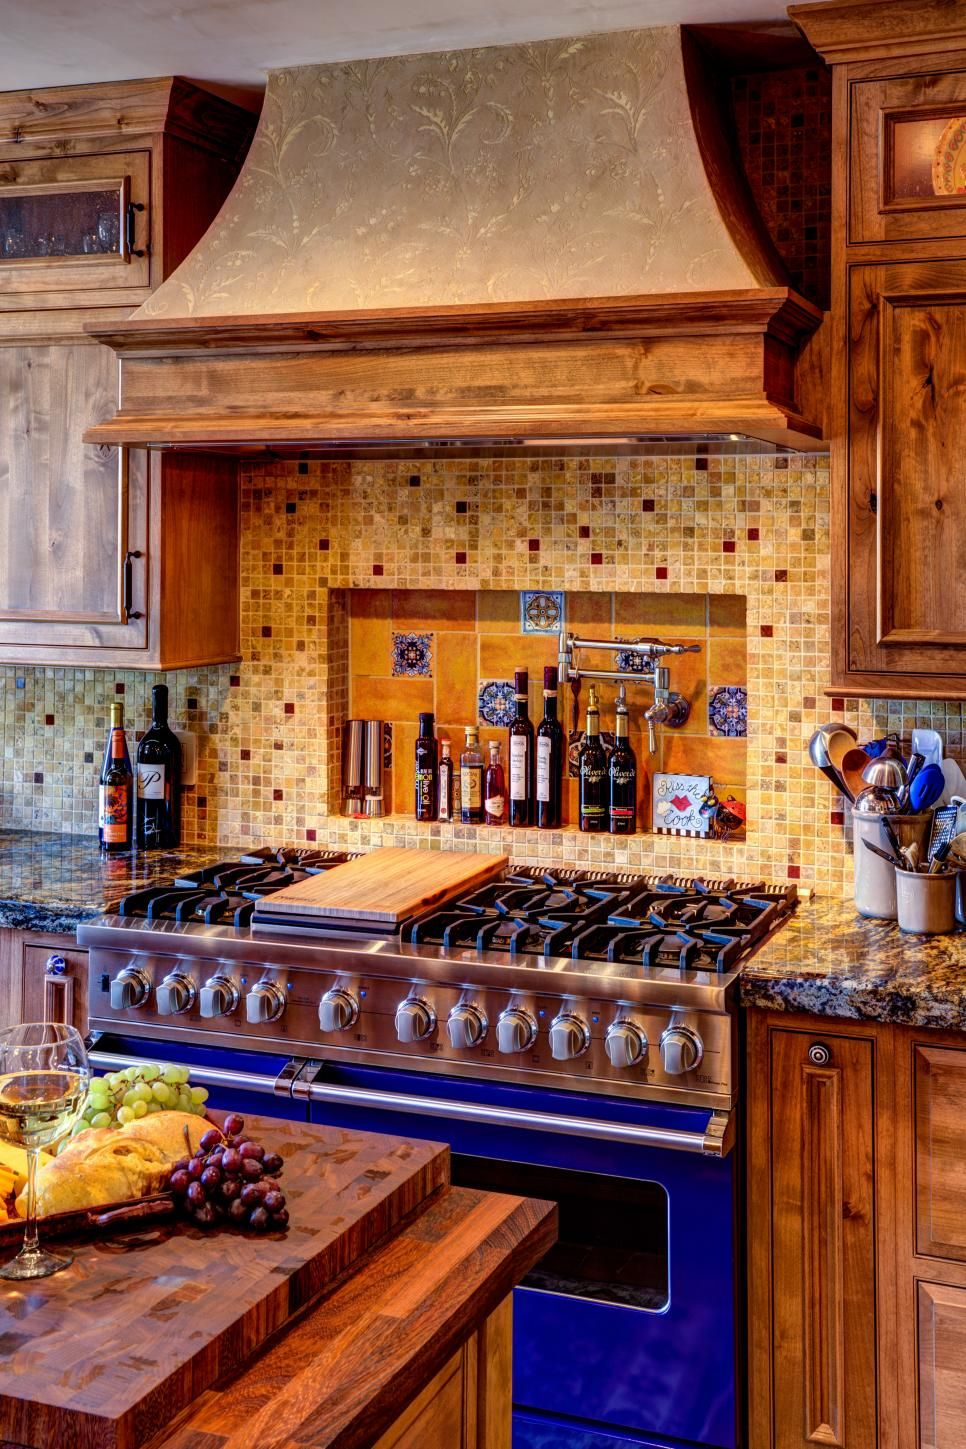 Rustic wood grain rustic wood furniture grain - Rustic Wood Kitchen Cabinets With Beautiful Wood Grain Are Paired With Dark Brown Countertops And Earth